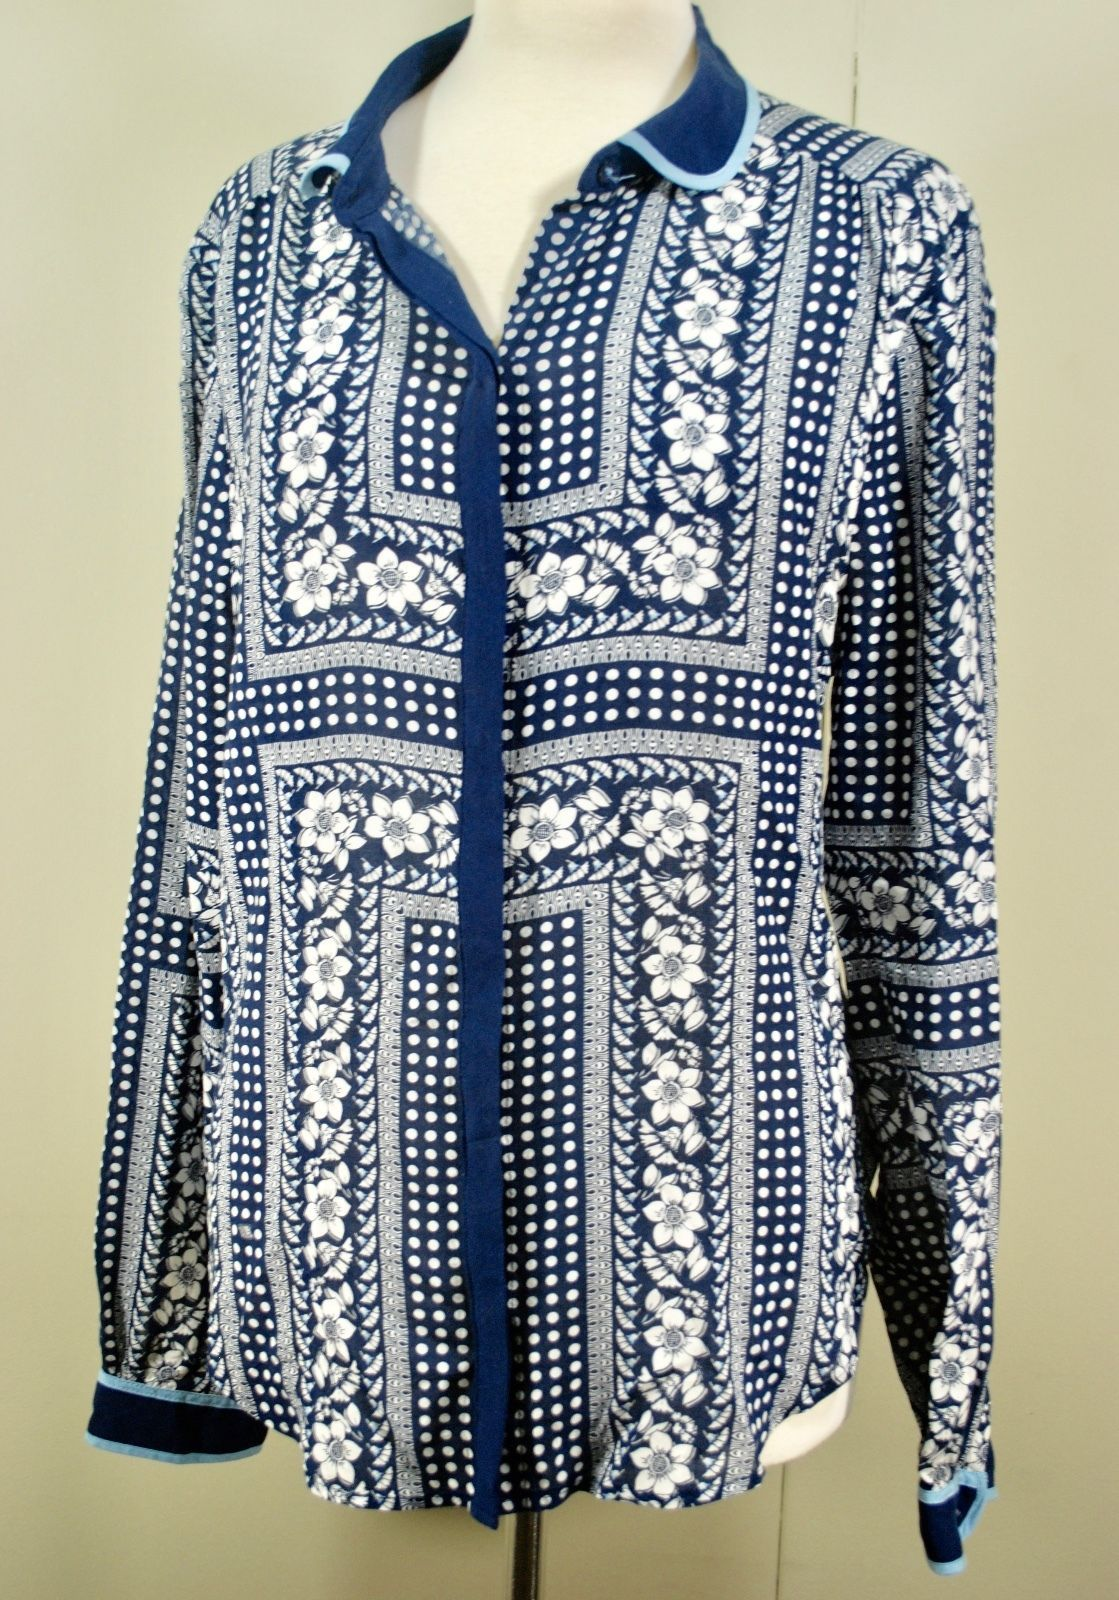 4d0920b73c1e0 57. 57. Previous. Anthropologie MAEVE Long Sleeve Button Front Blouse  Floral Polka Dot Lightweight